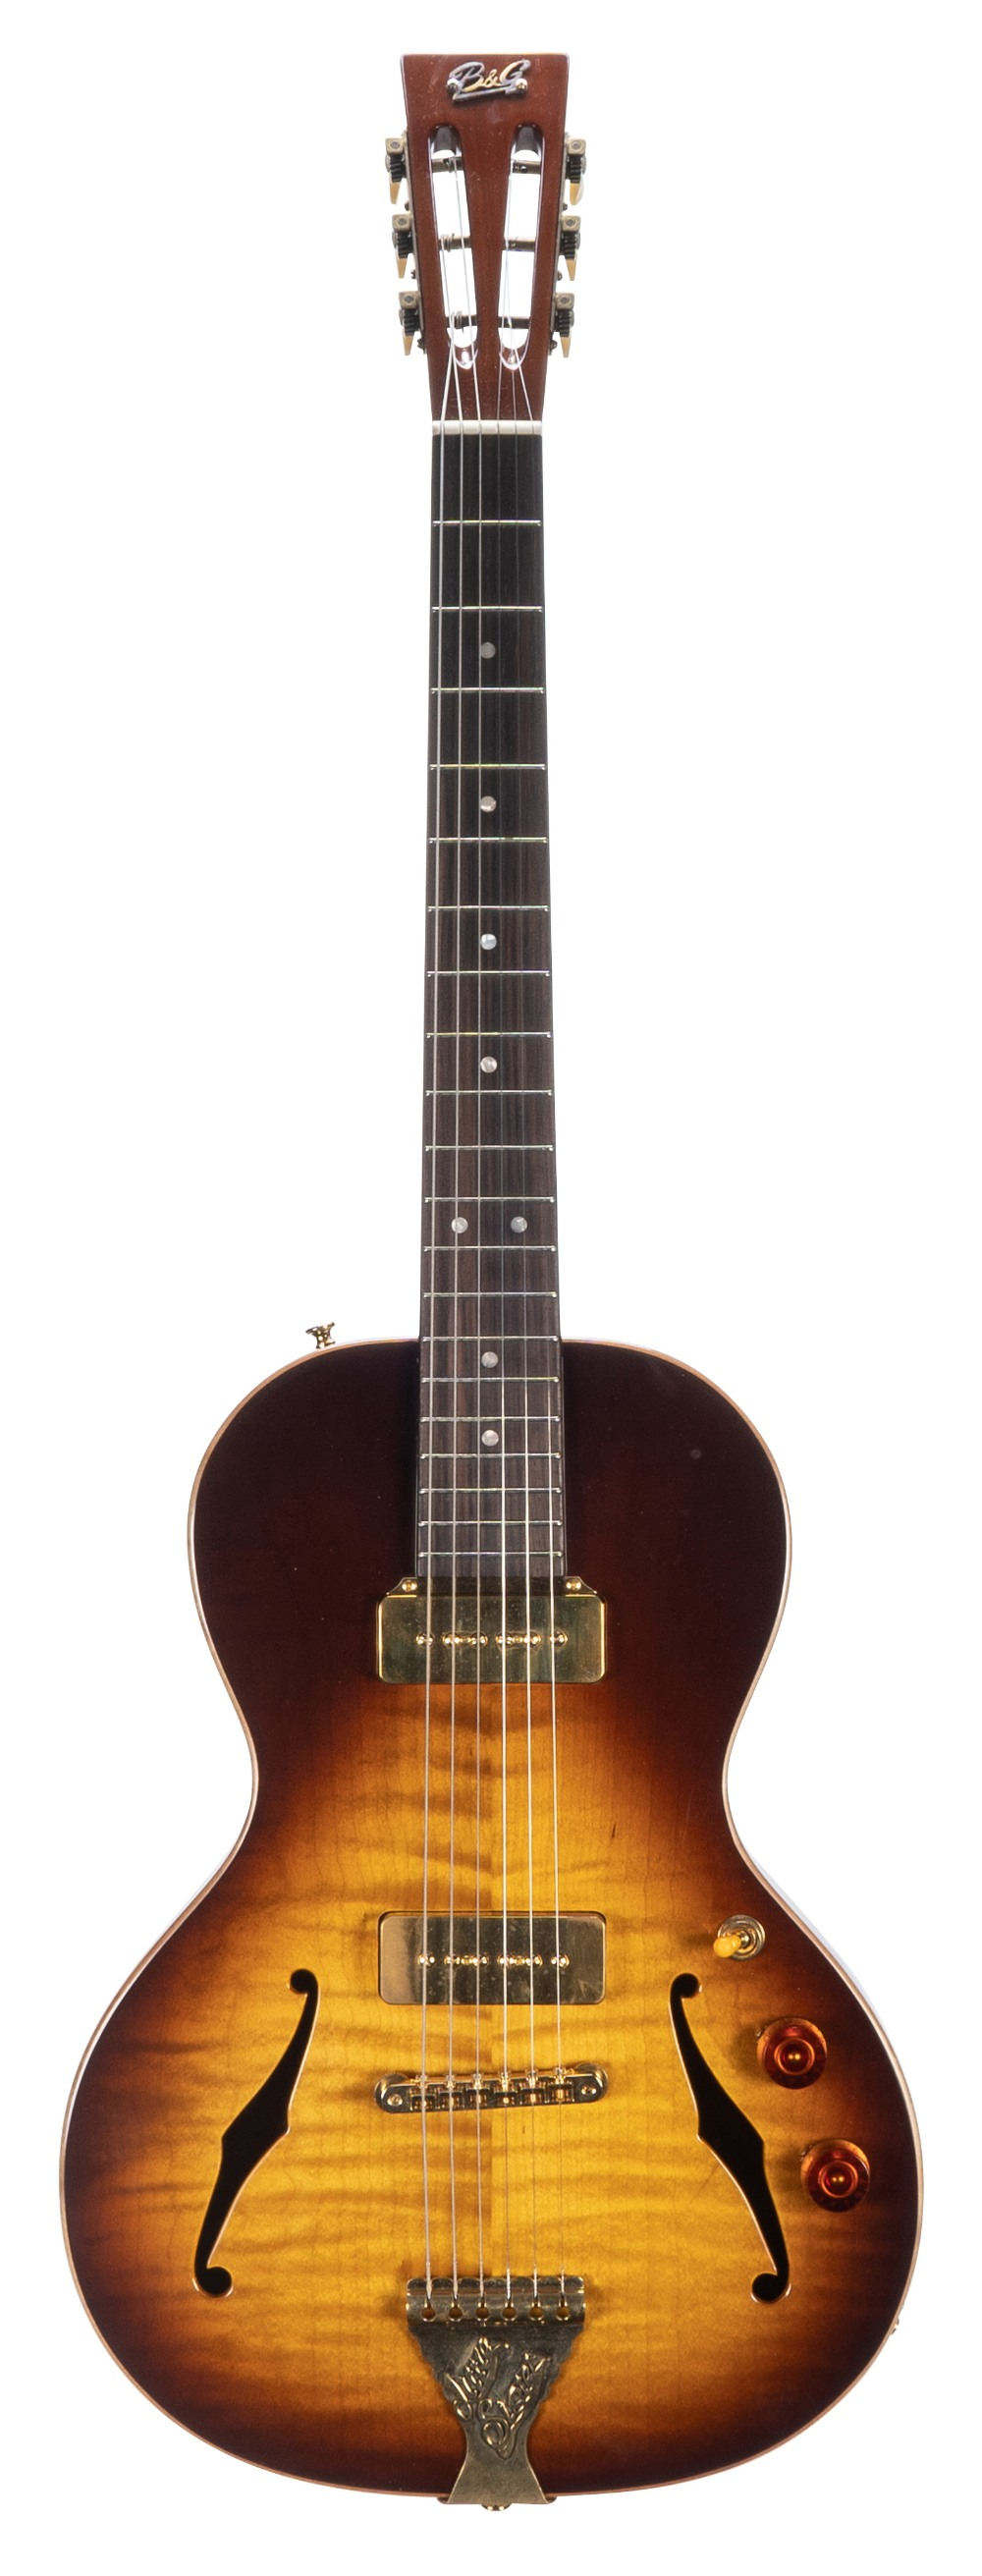 2017 B & G Little Sister Crossroads semi hollow body electric guitar, made in China, ser. no.